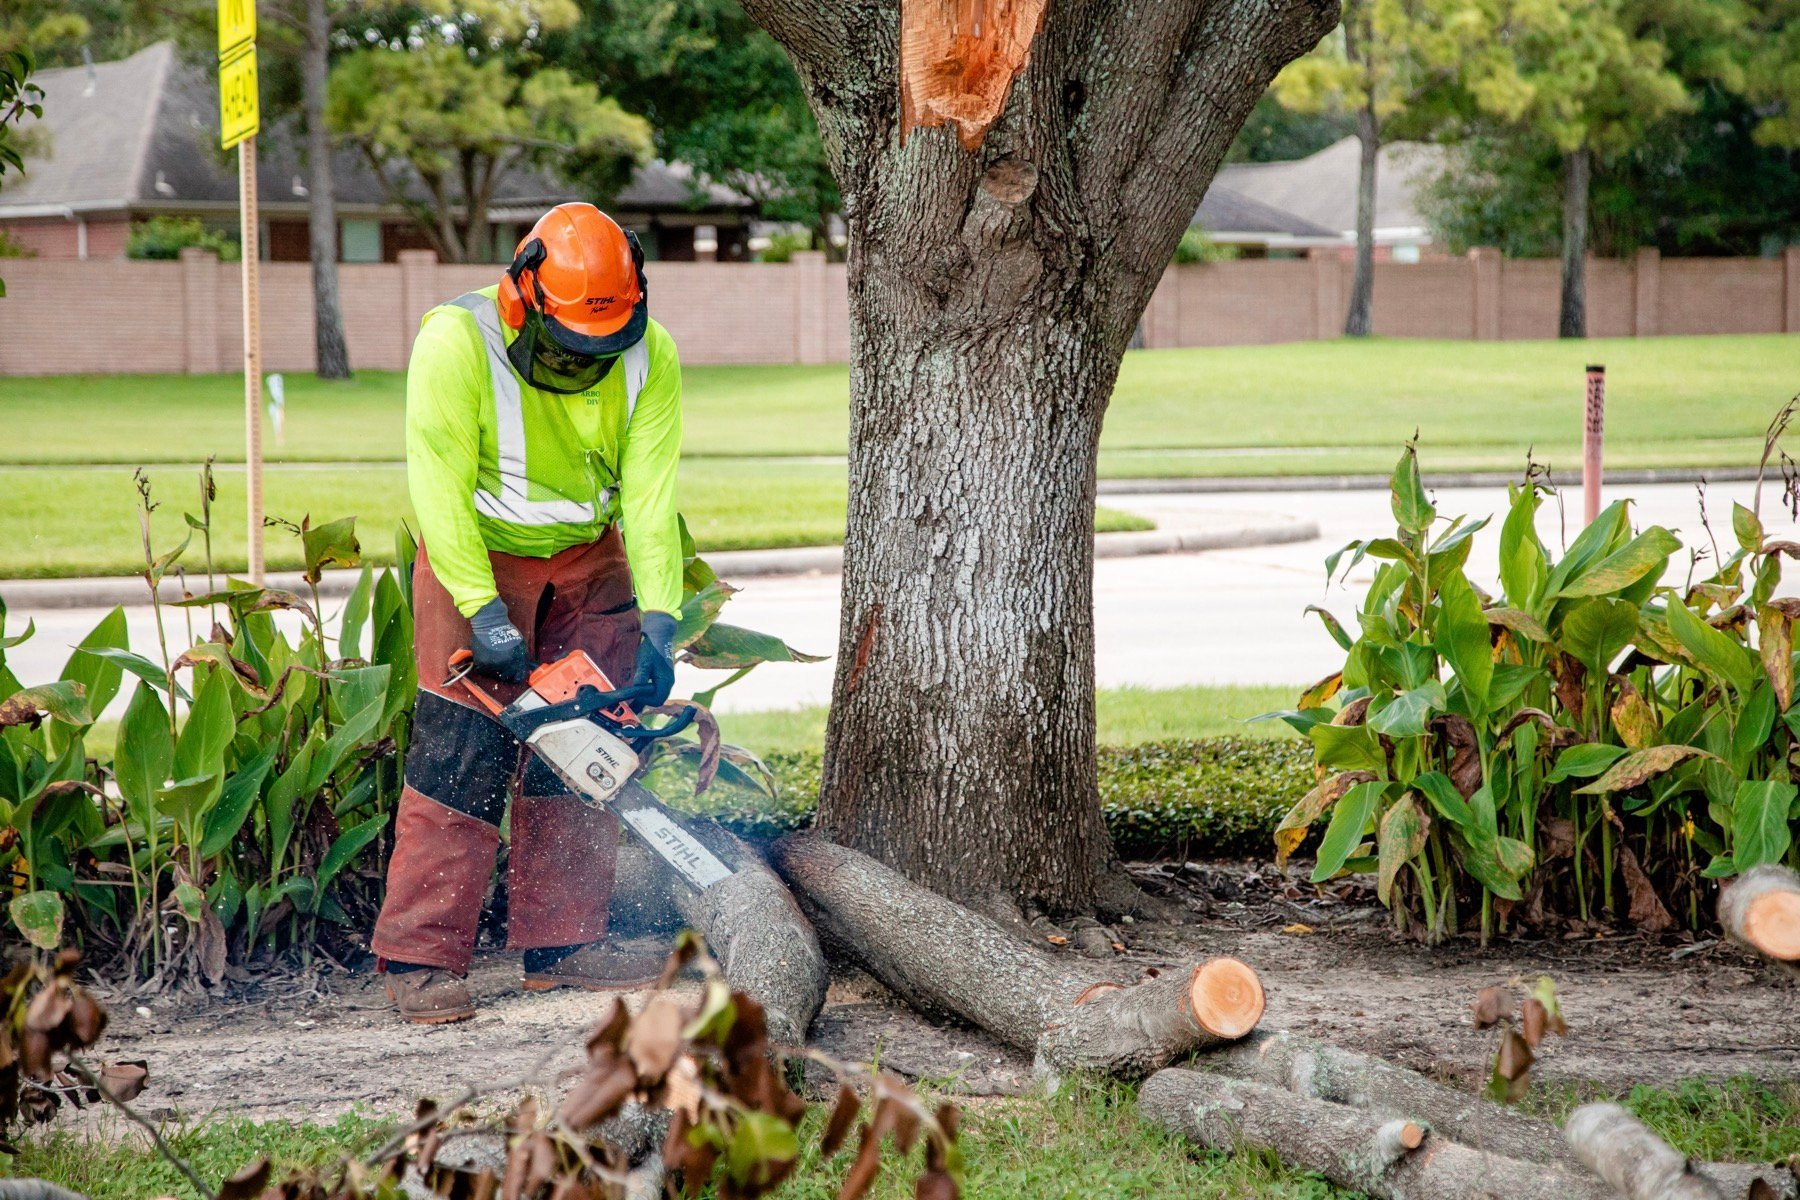 commercial tree service crew using a chainsaw to cut up fallen tree limbs